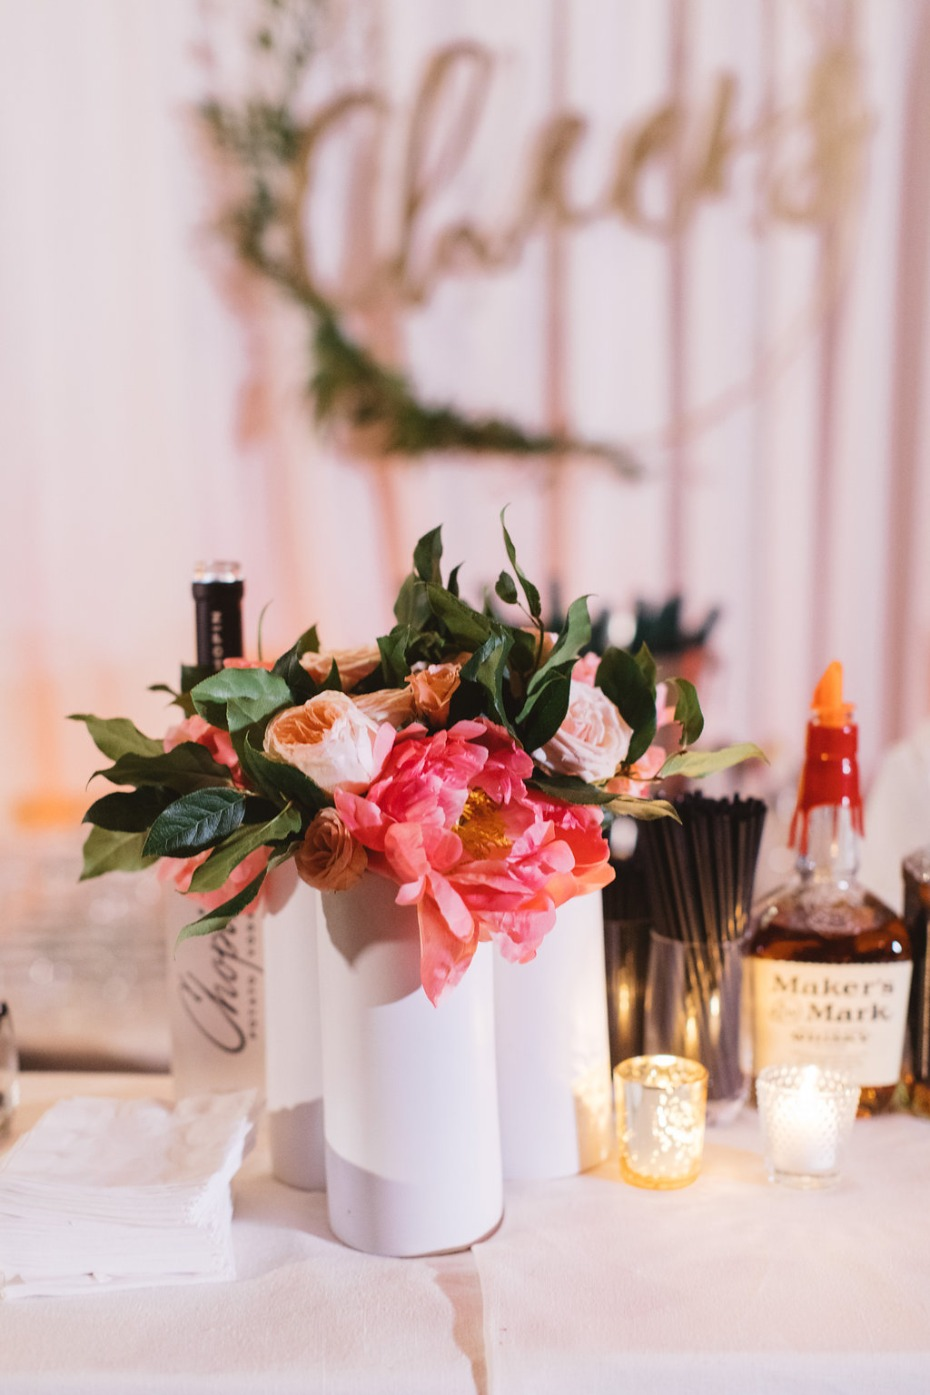 Wedding bar florals